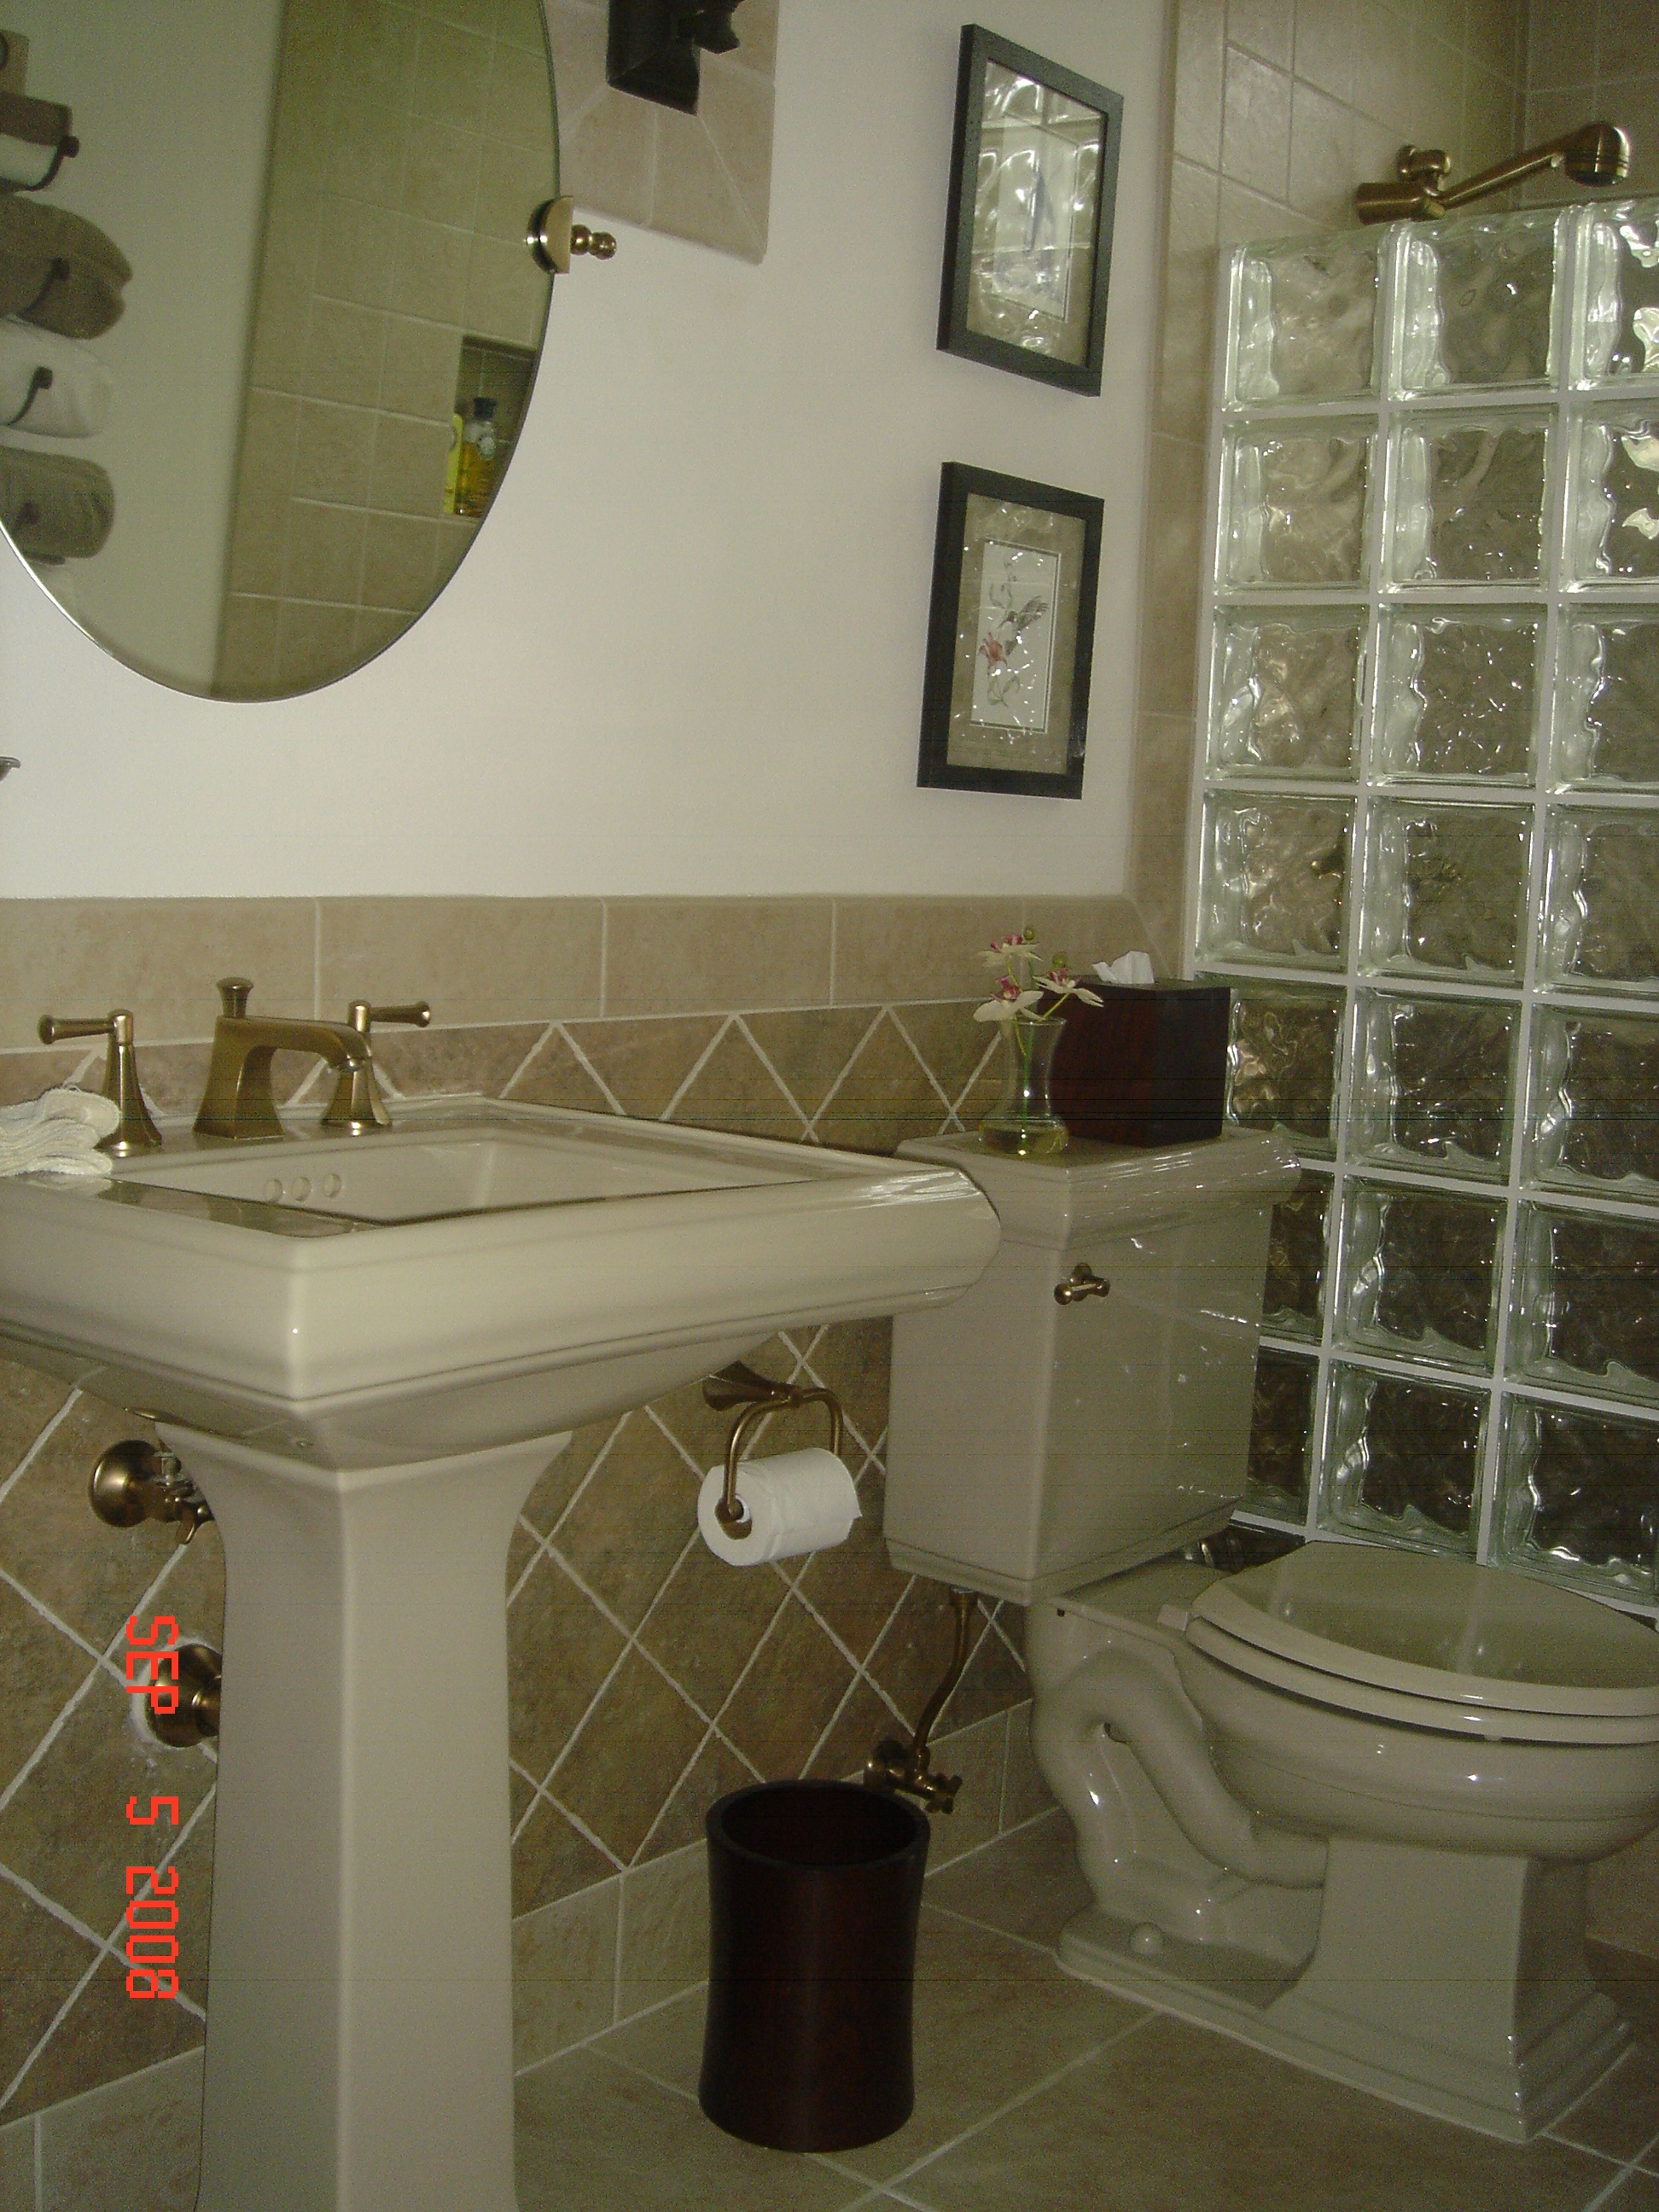 Tile design solutions orlando fl 32803 angies list for Bathroom remodel 32828